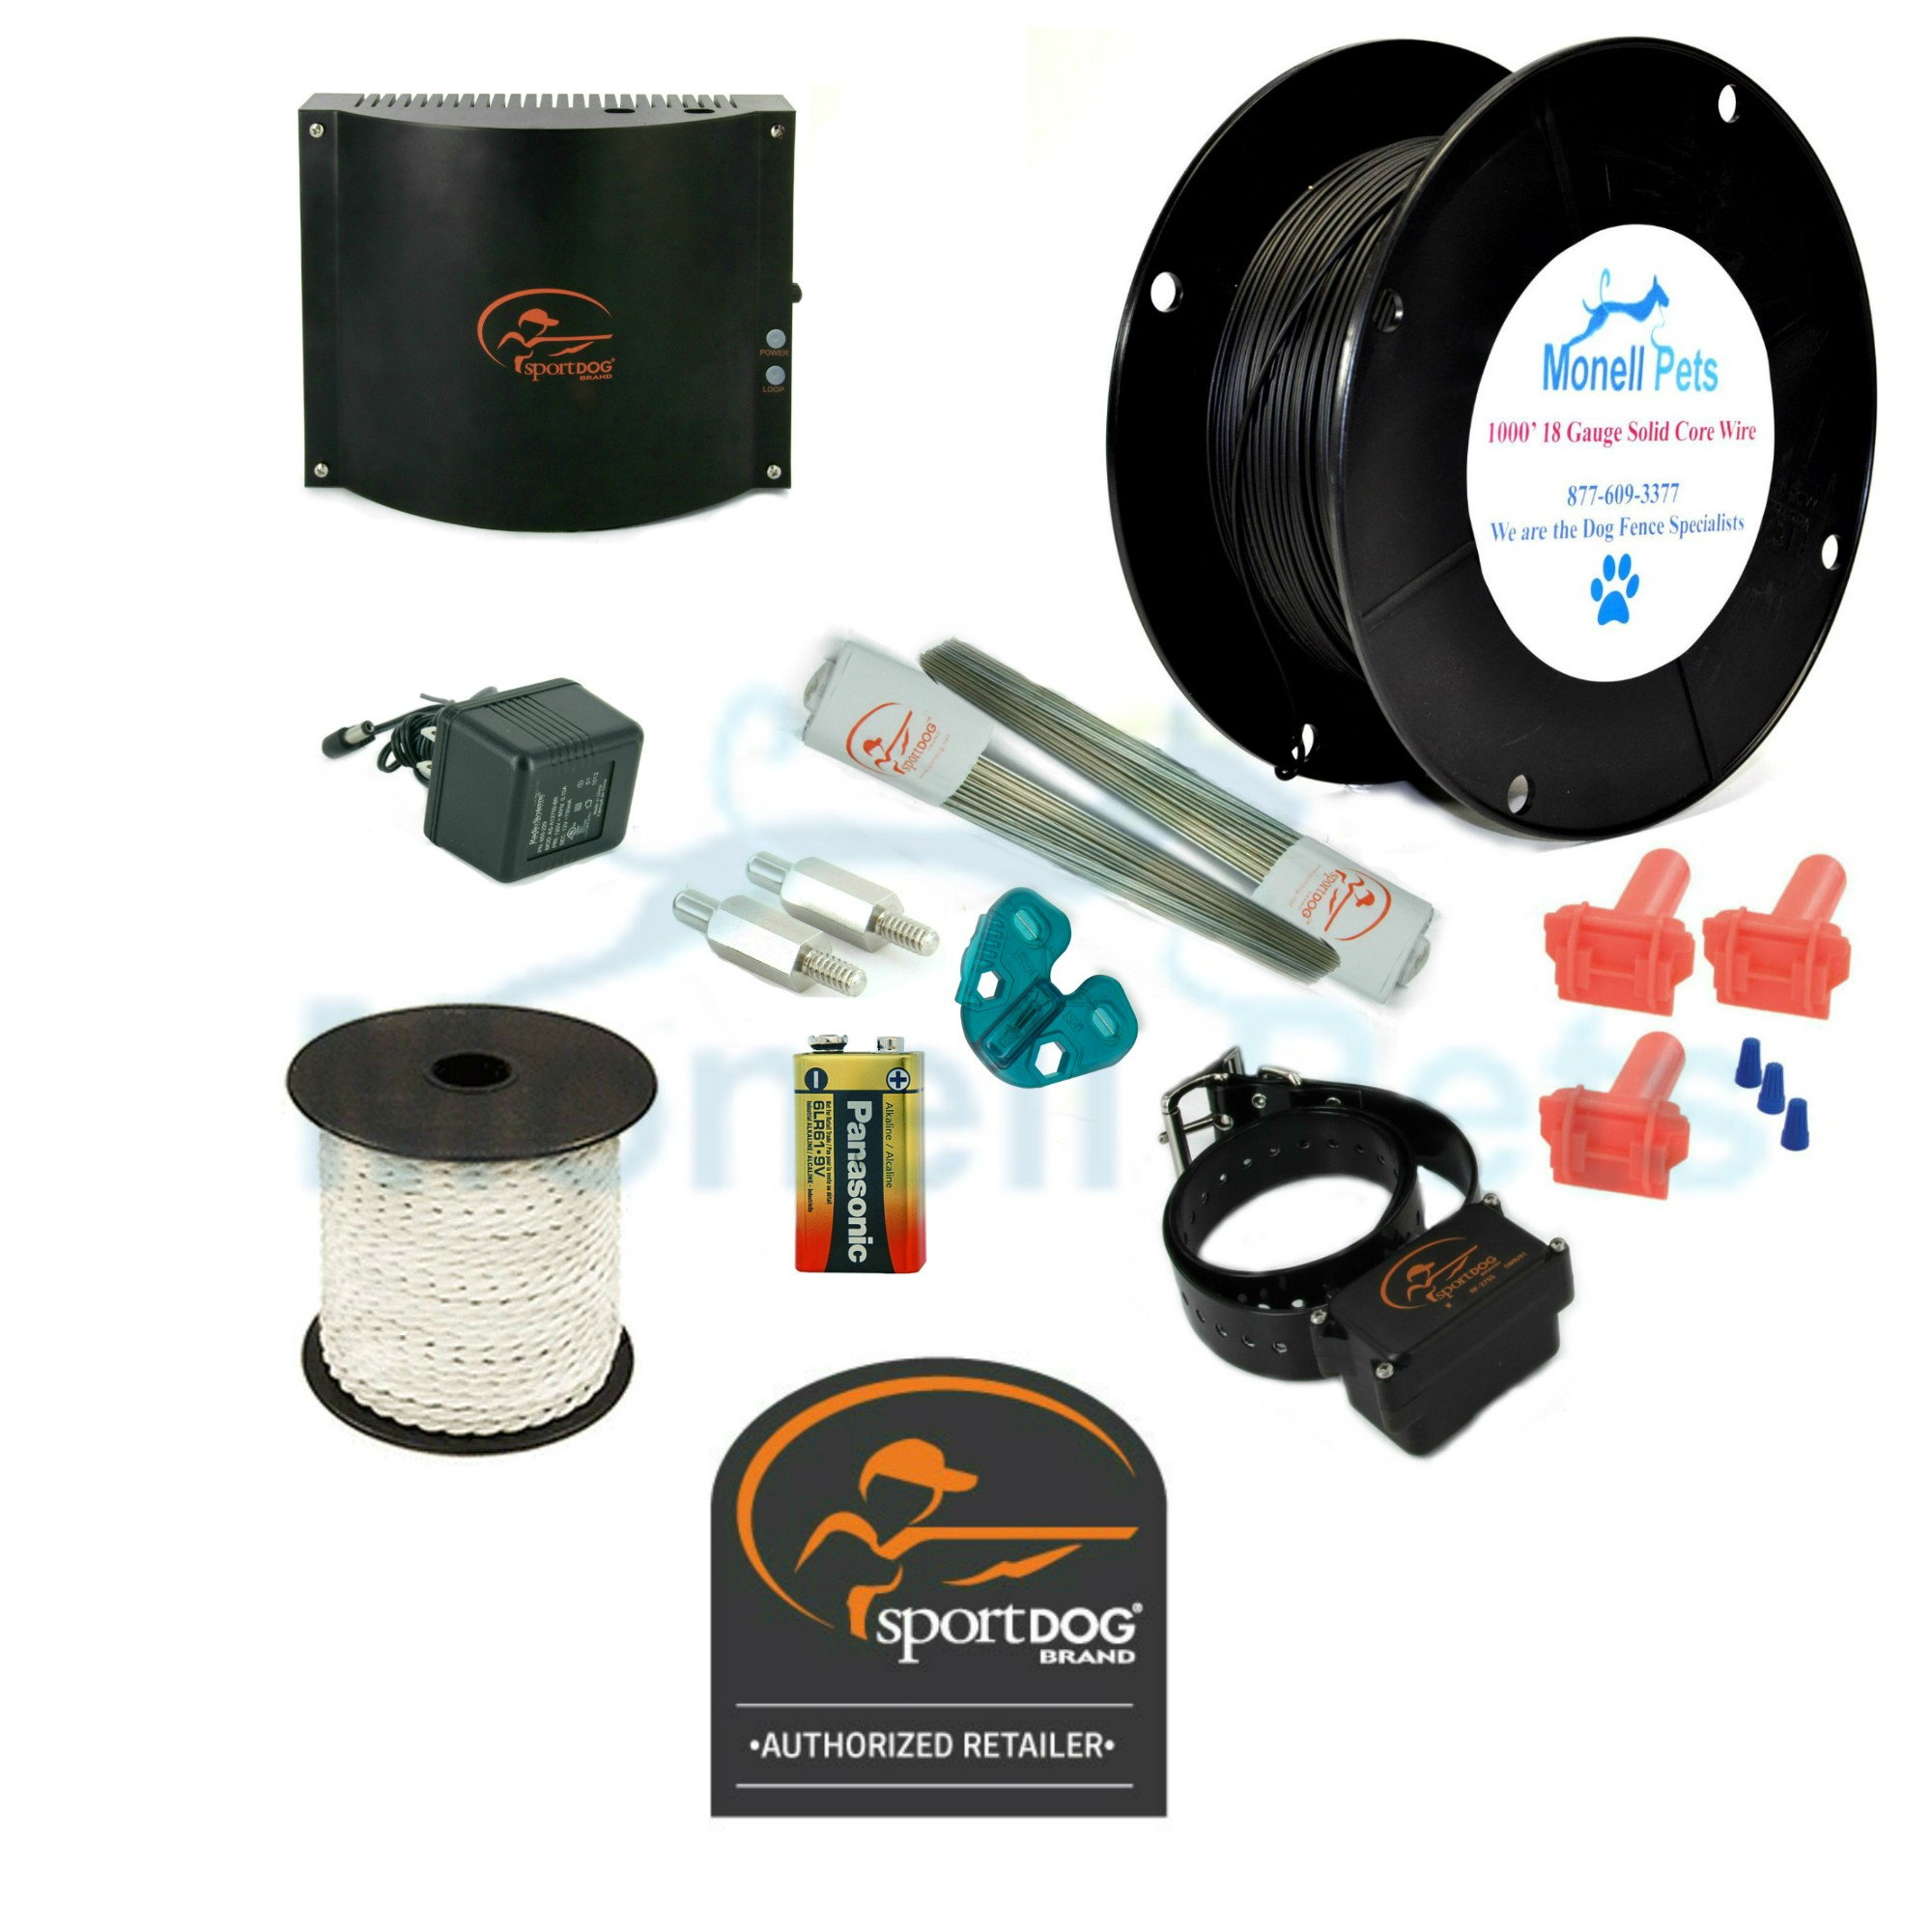 SportDOG In-Ground Electric Dog Fence System SDF-100A 18 Gauge Wire ...